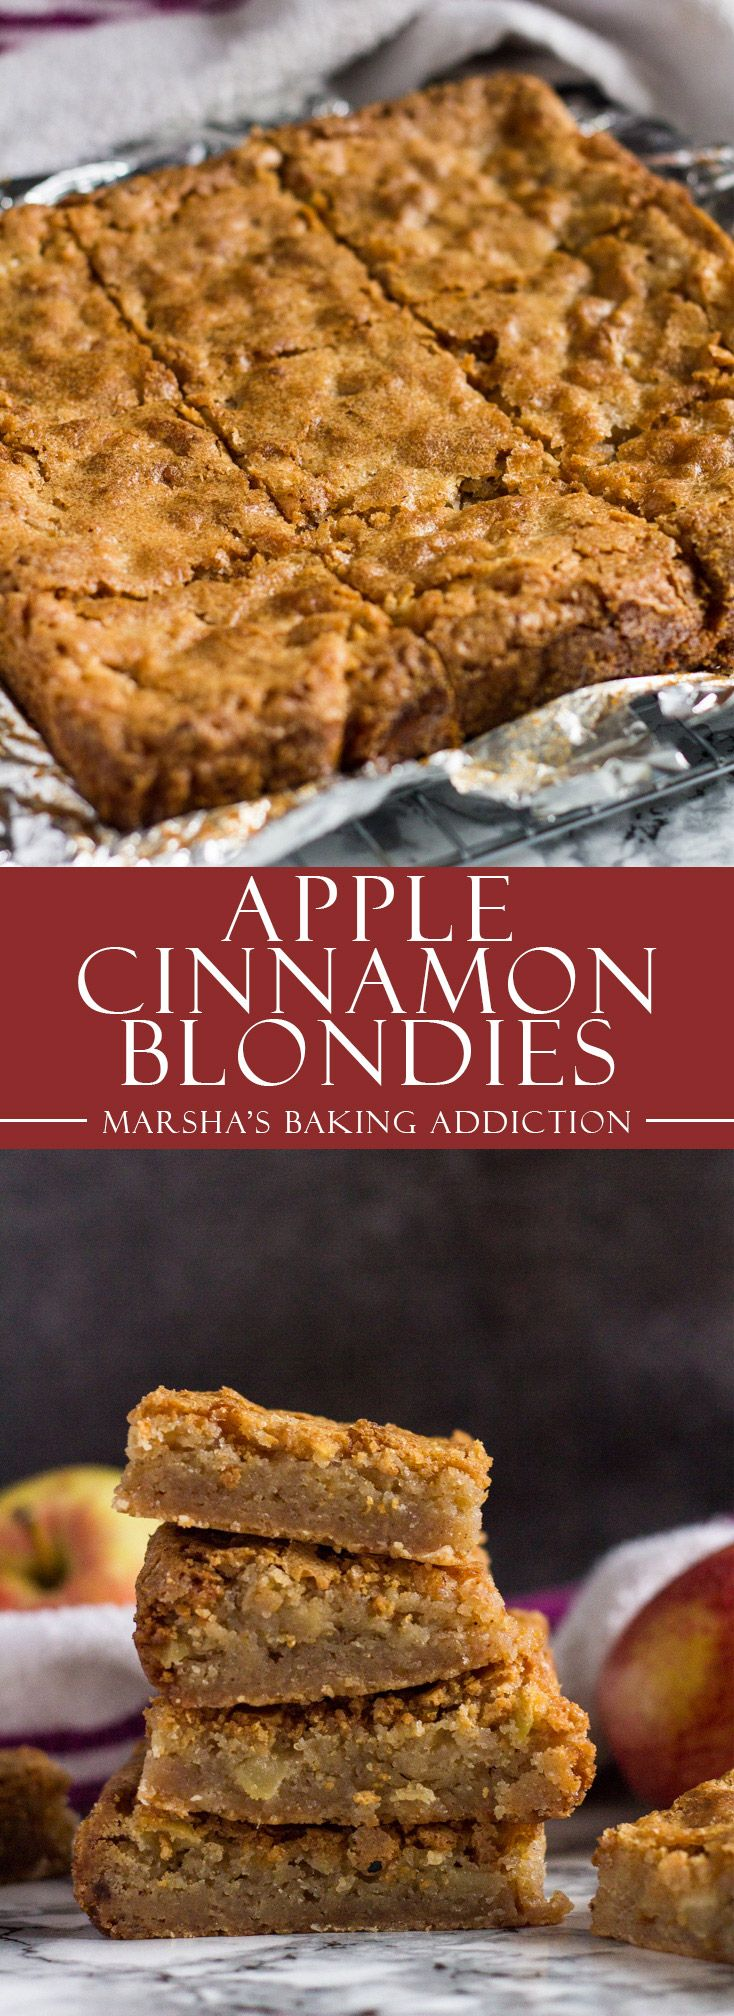 Apple Cinnamon Blondies | marshasbakingaddiction.com @marshasbakeblog